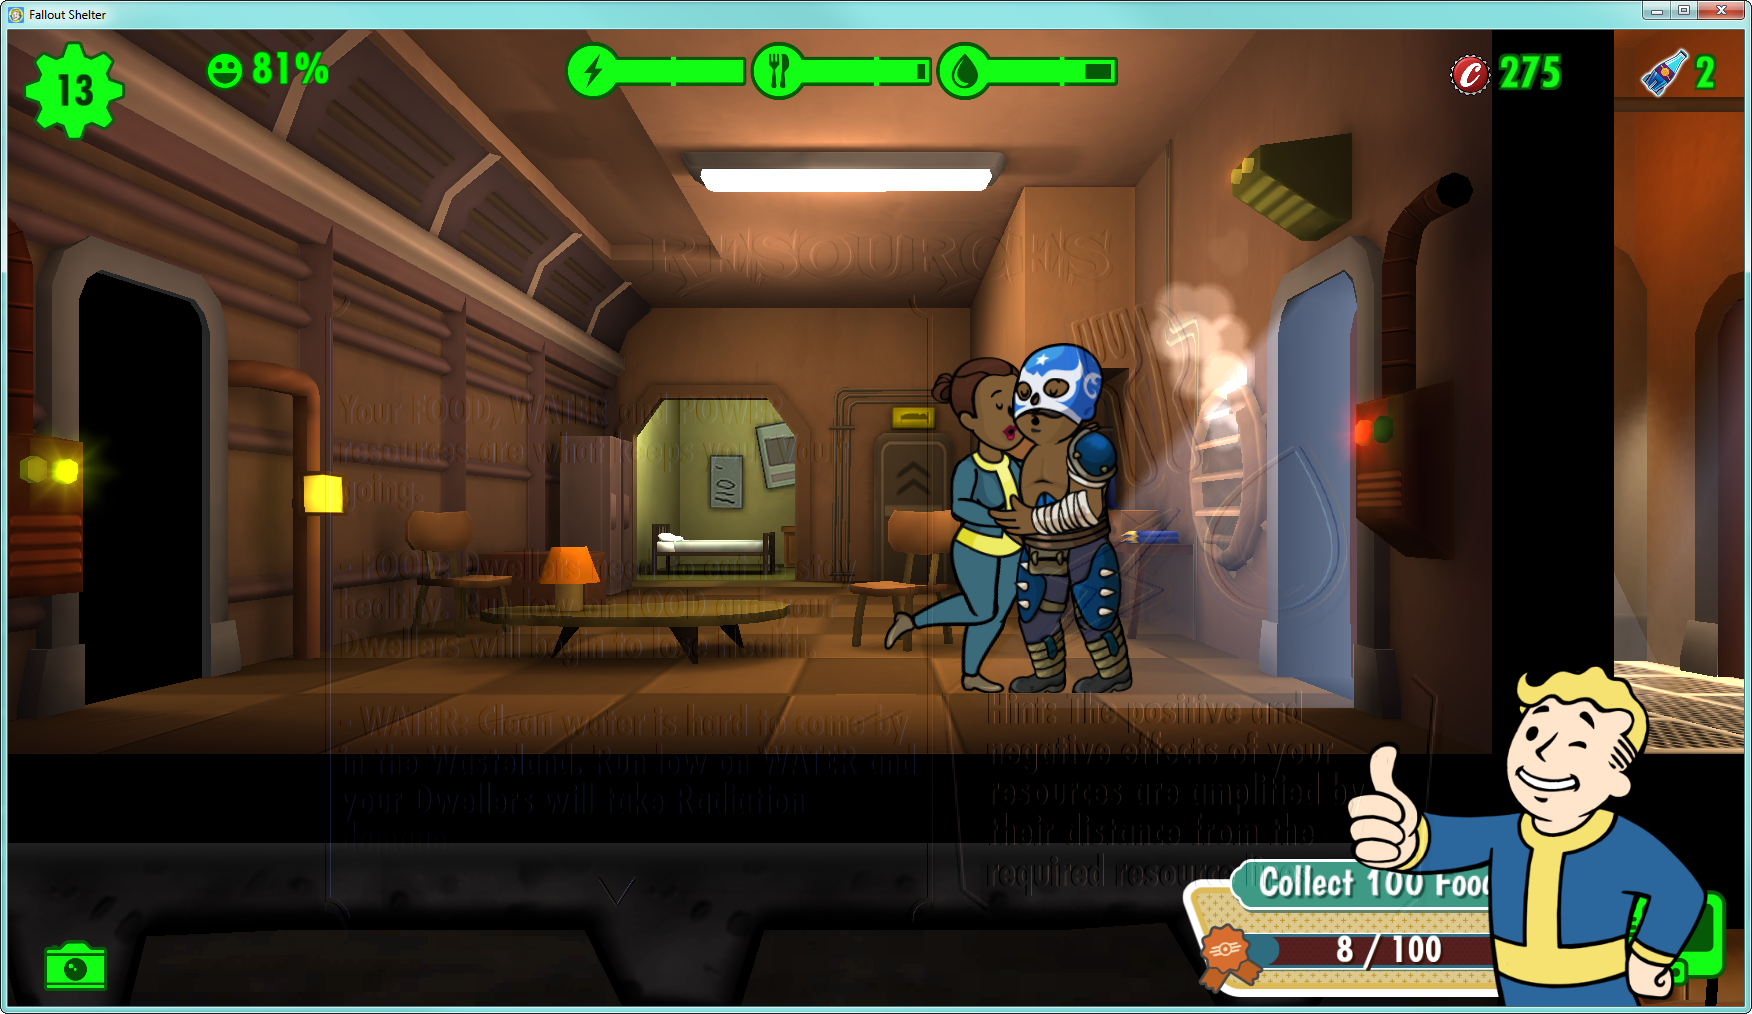 How To Get More Food In Fallout Shelter